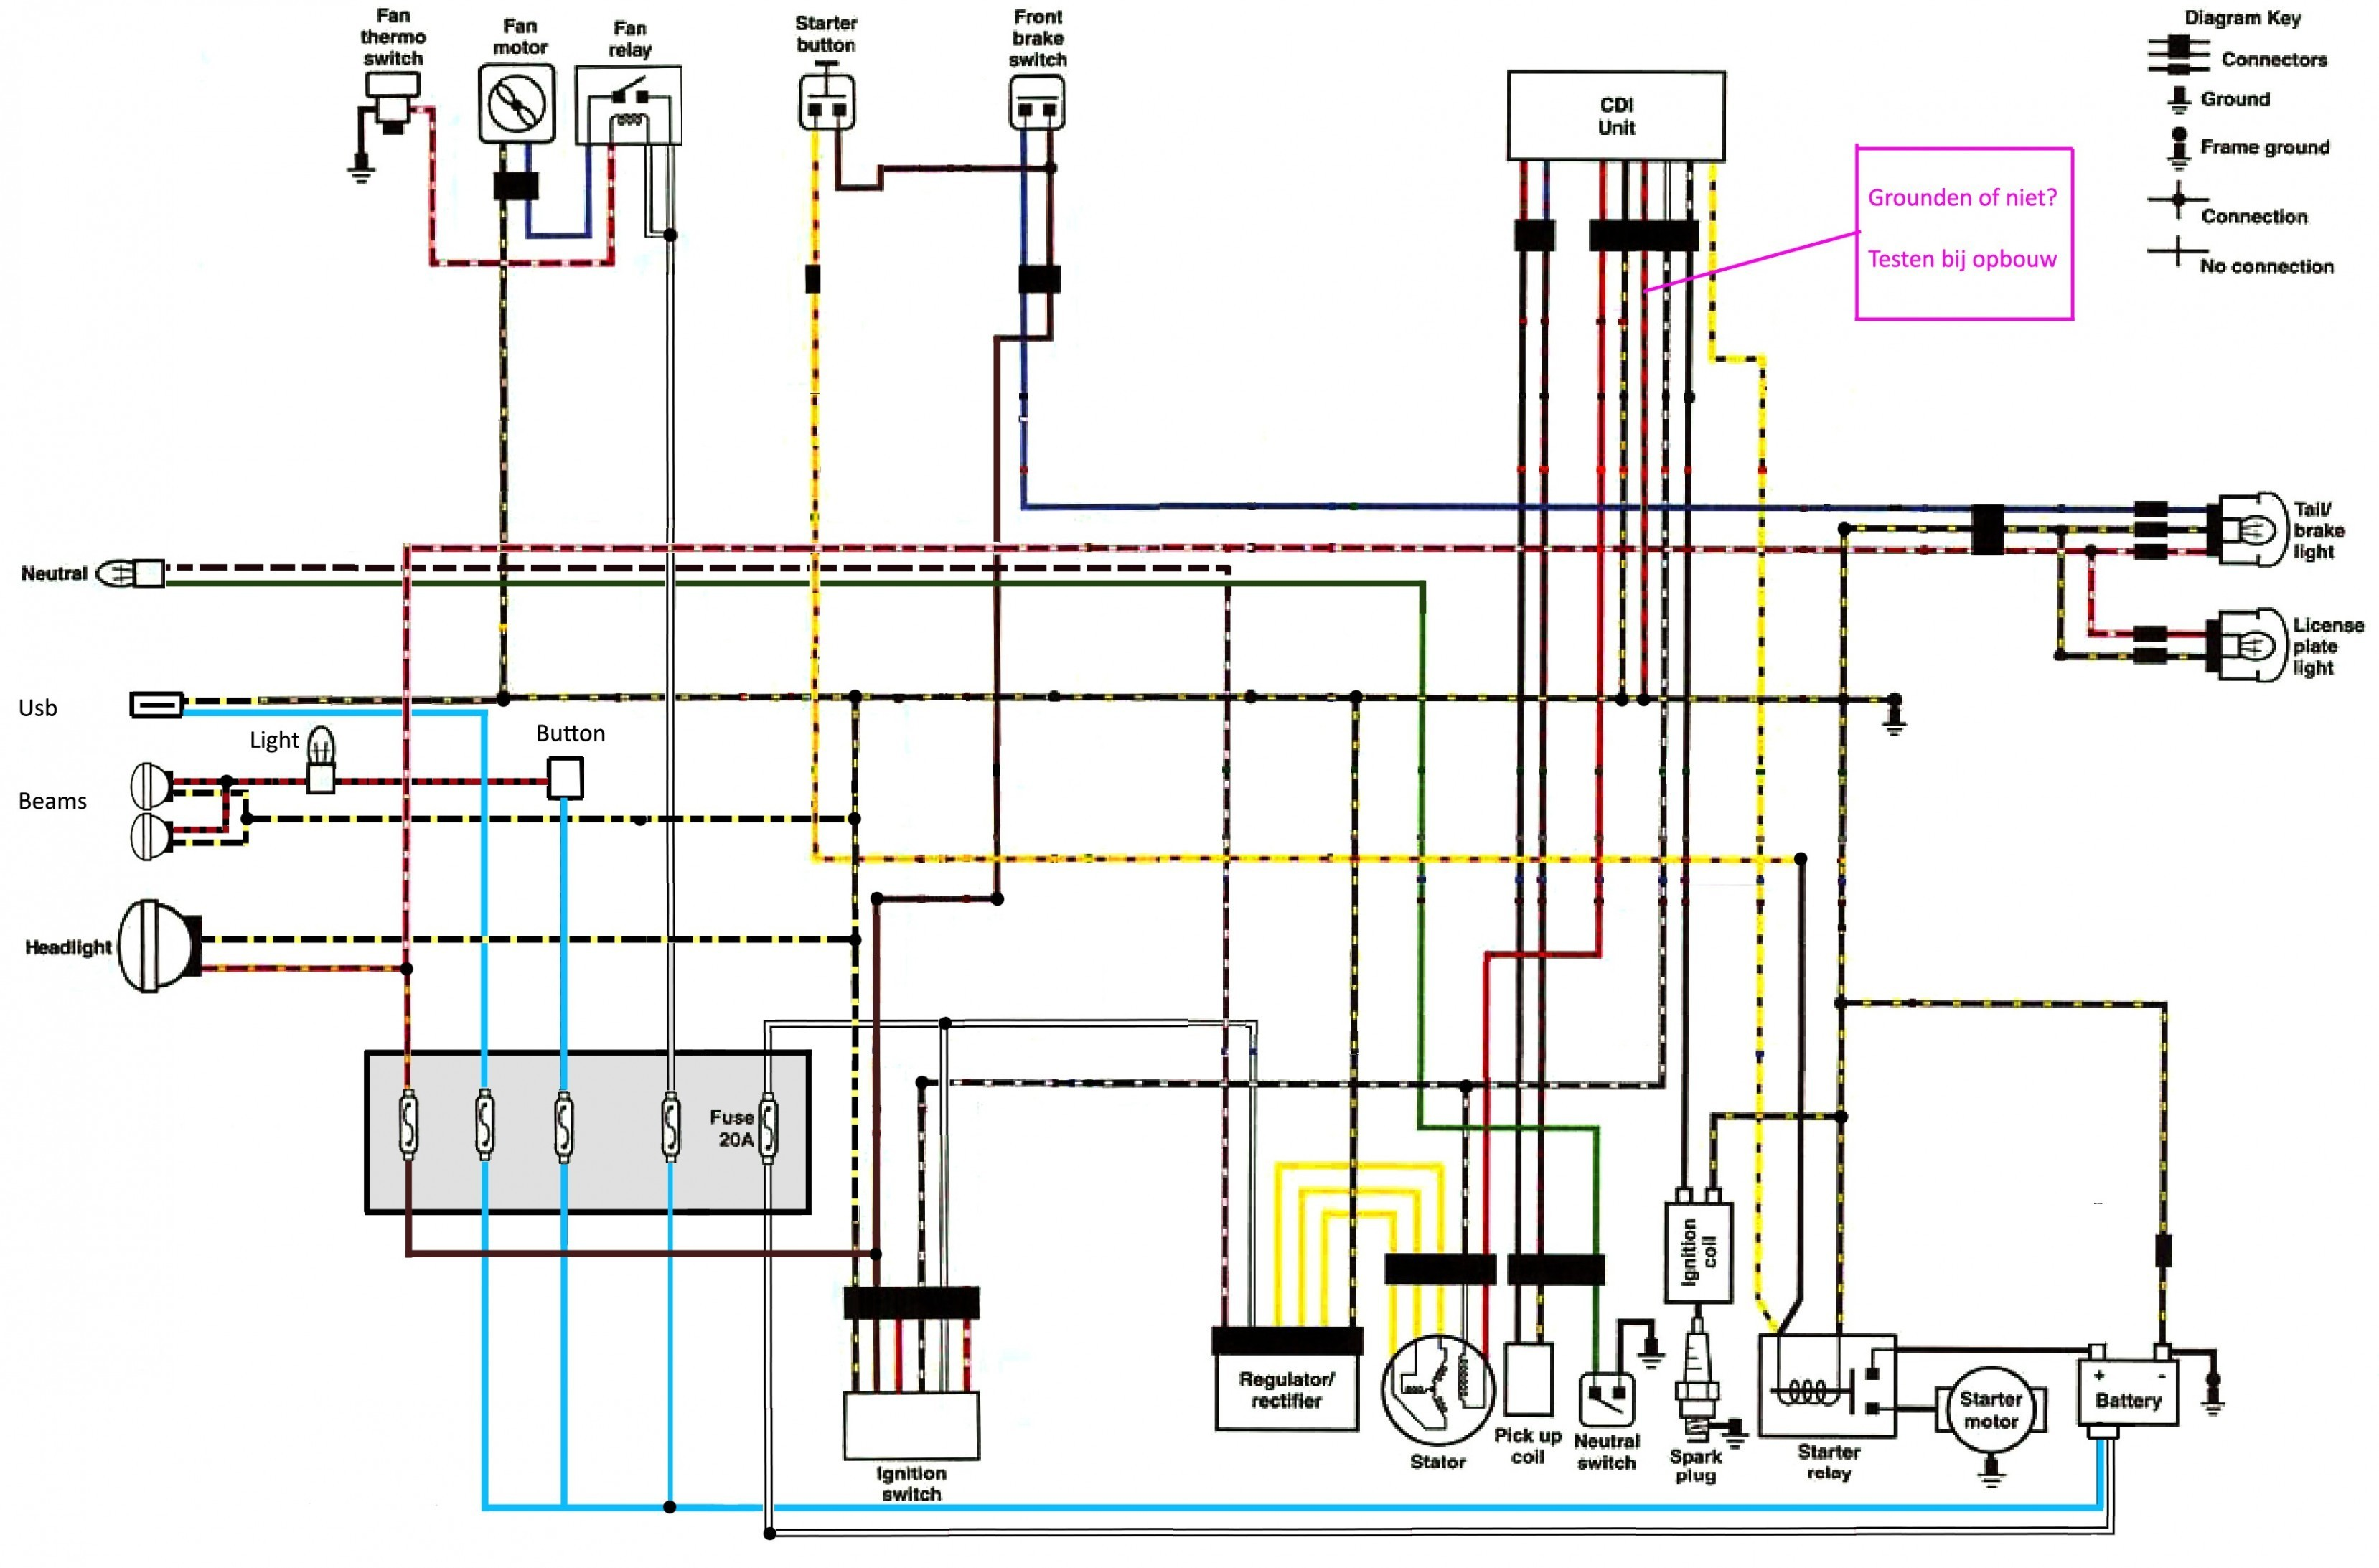 Nx650 Wiring Diagram - Wiring Diagrams Blogopinion.palox-france.fr